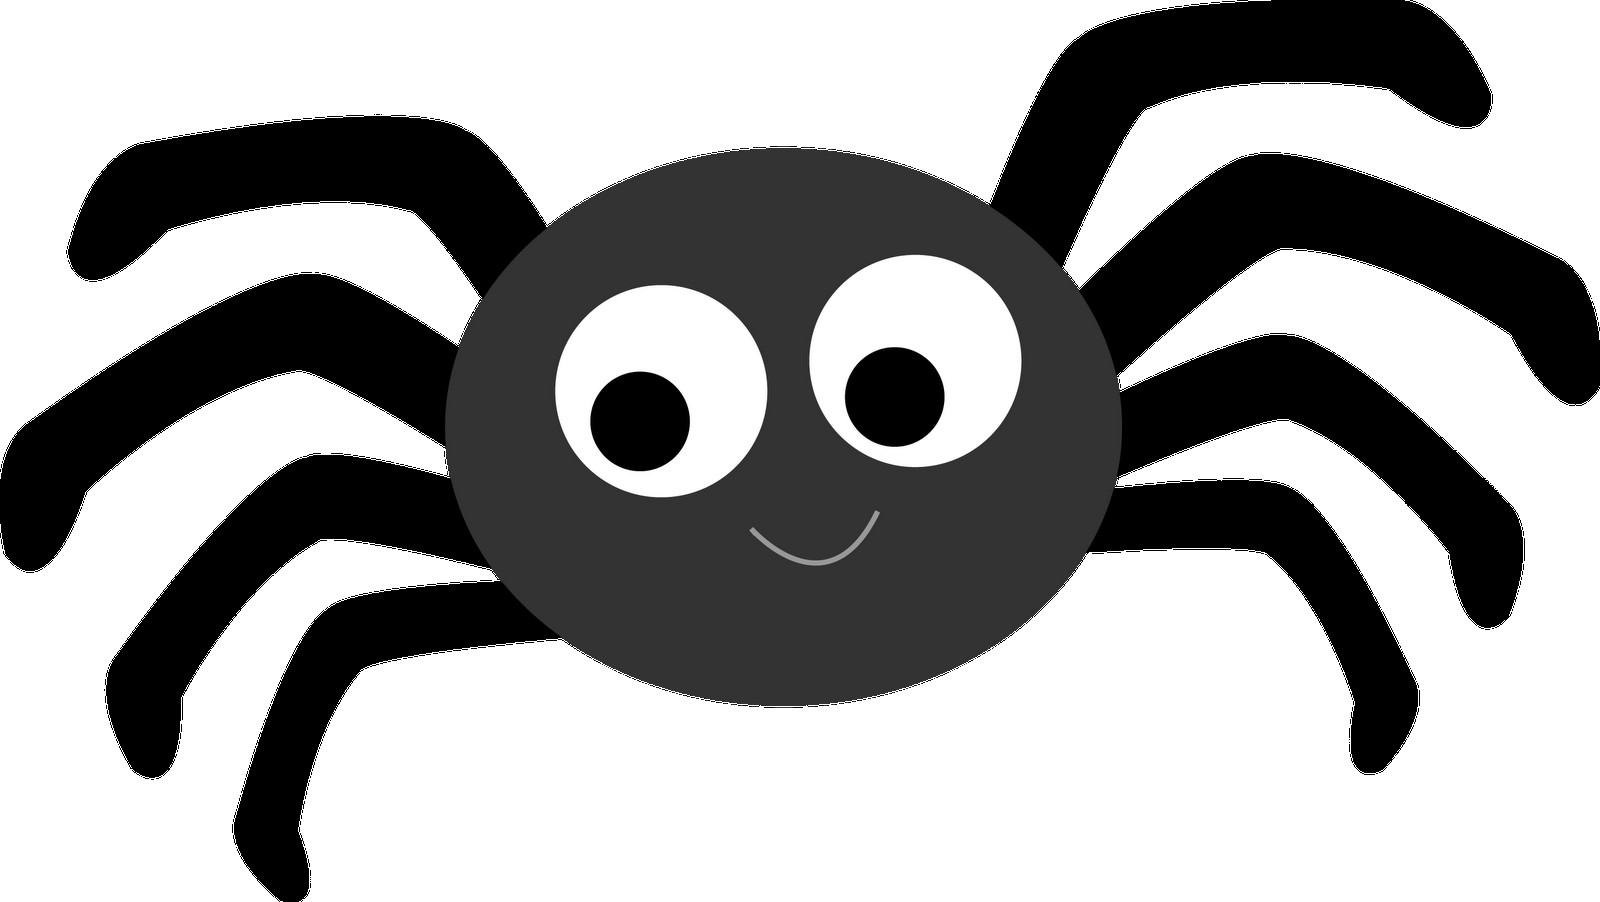 Spiders clipart spider insect. Colorful transitionsfv flat cartoon